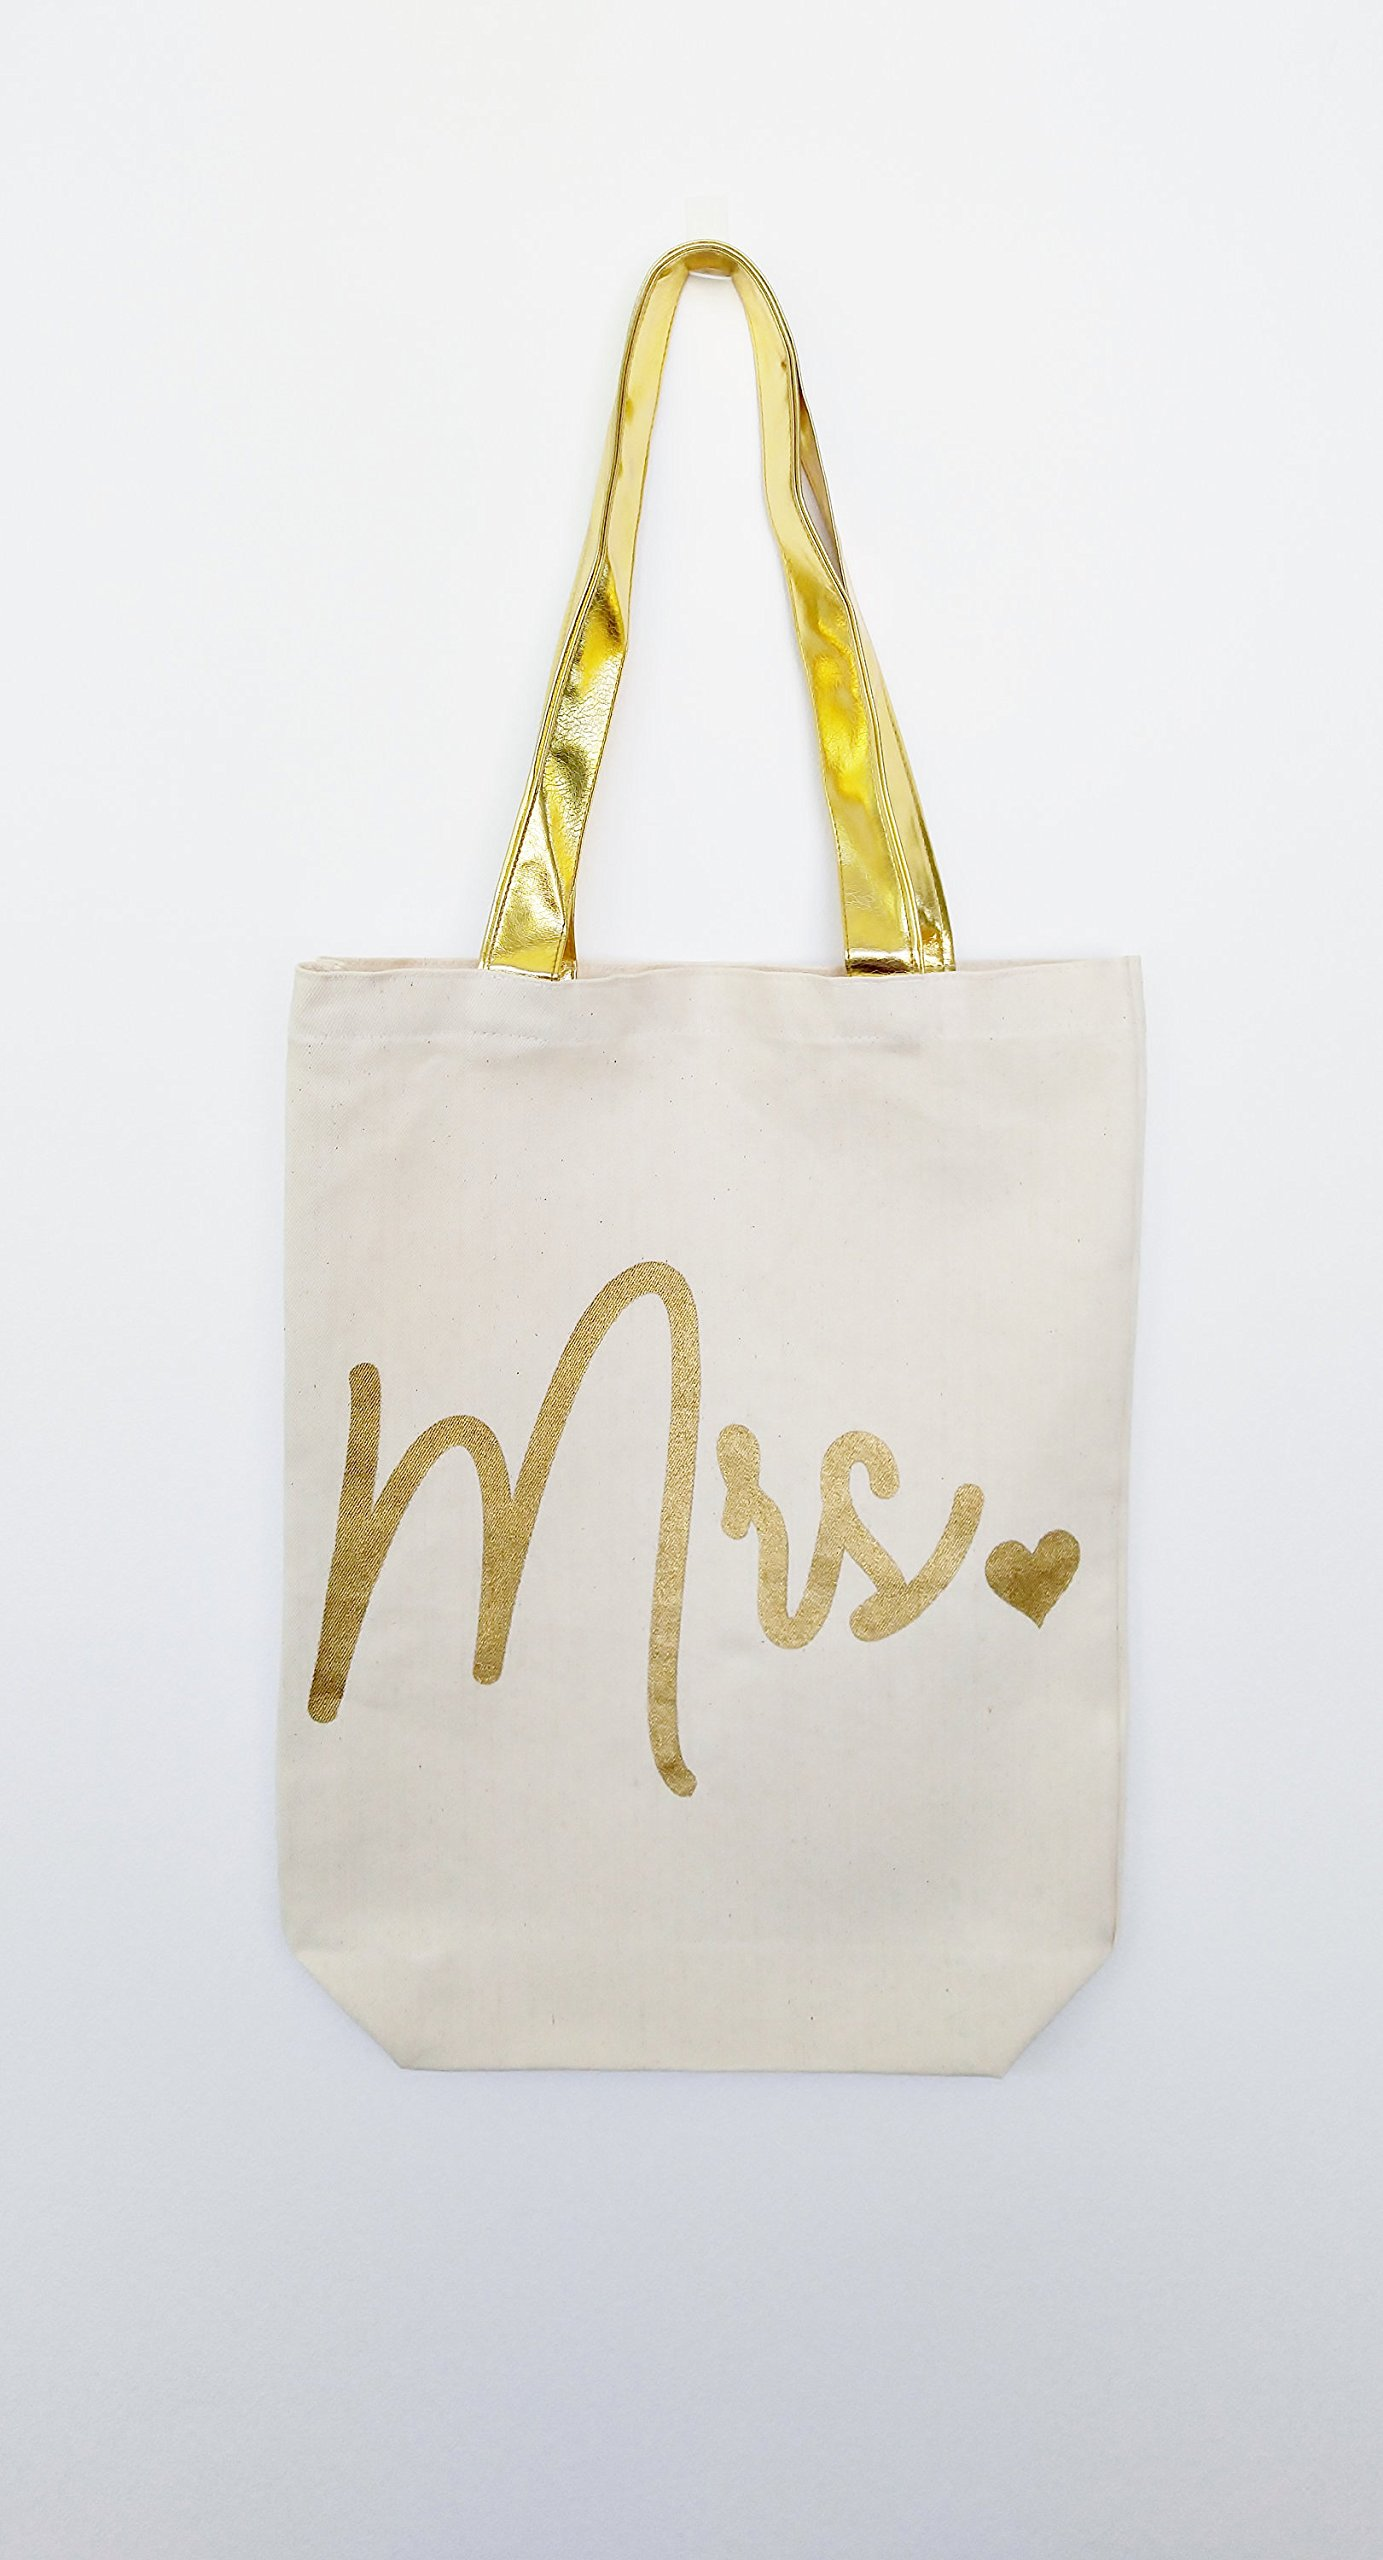 Mrs Tote Bag, Bride Tote, Bridal Tote, Bride Gift, Future Mrs Tote, Engagement Gift, Bridal Shower Gift, Bride Bag, Honeymoon Bag, Mrs Bag - handmade-bags